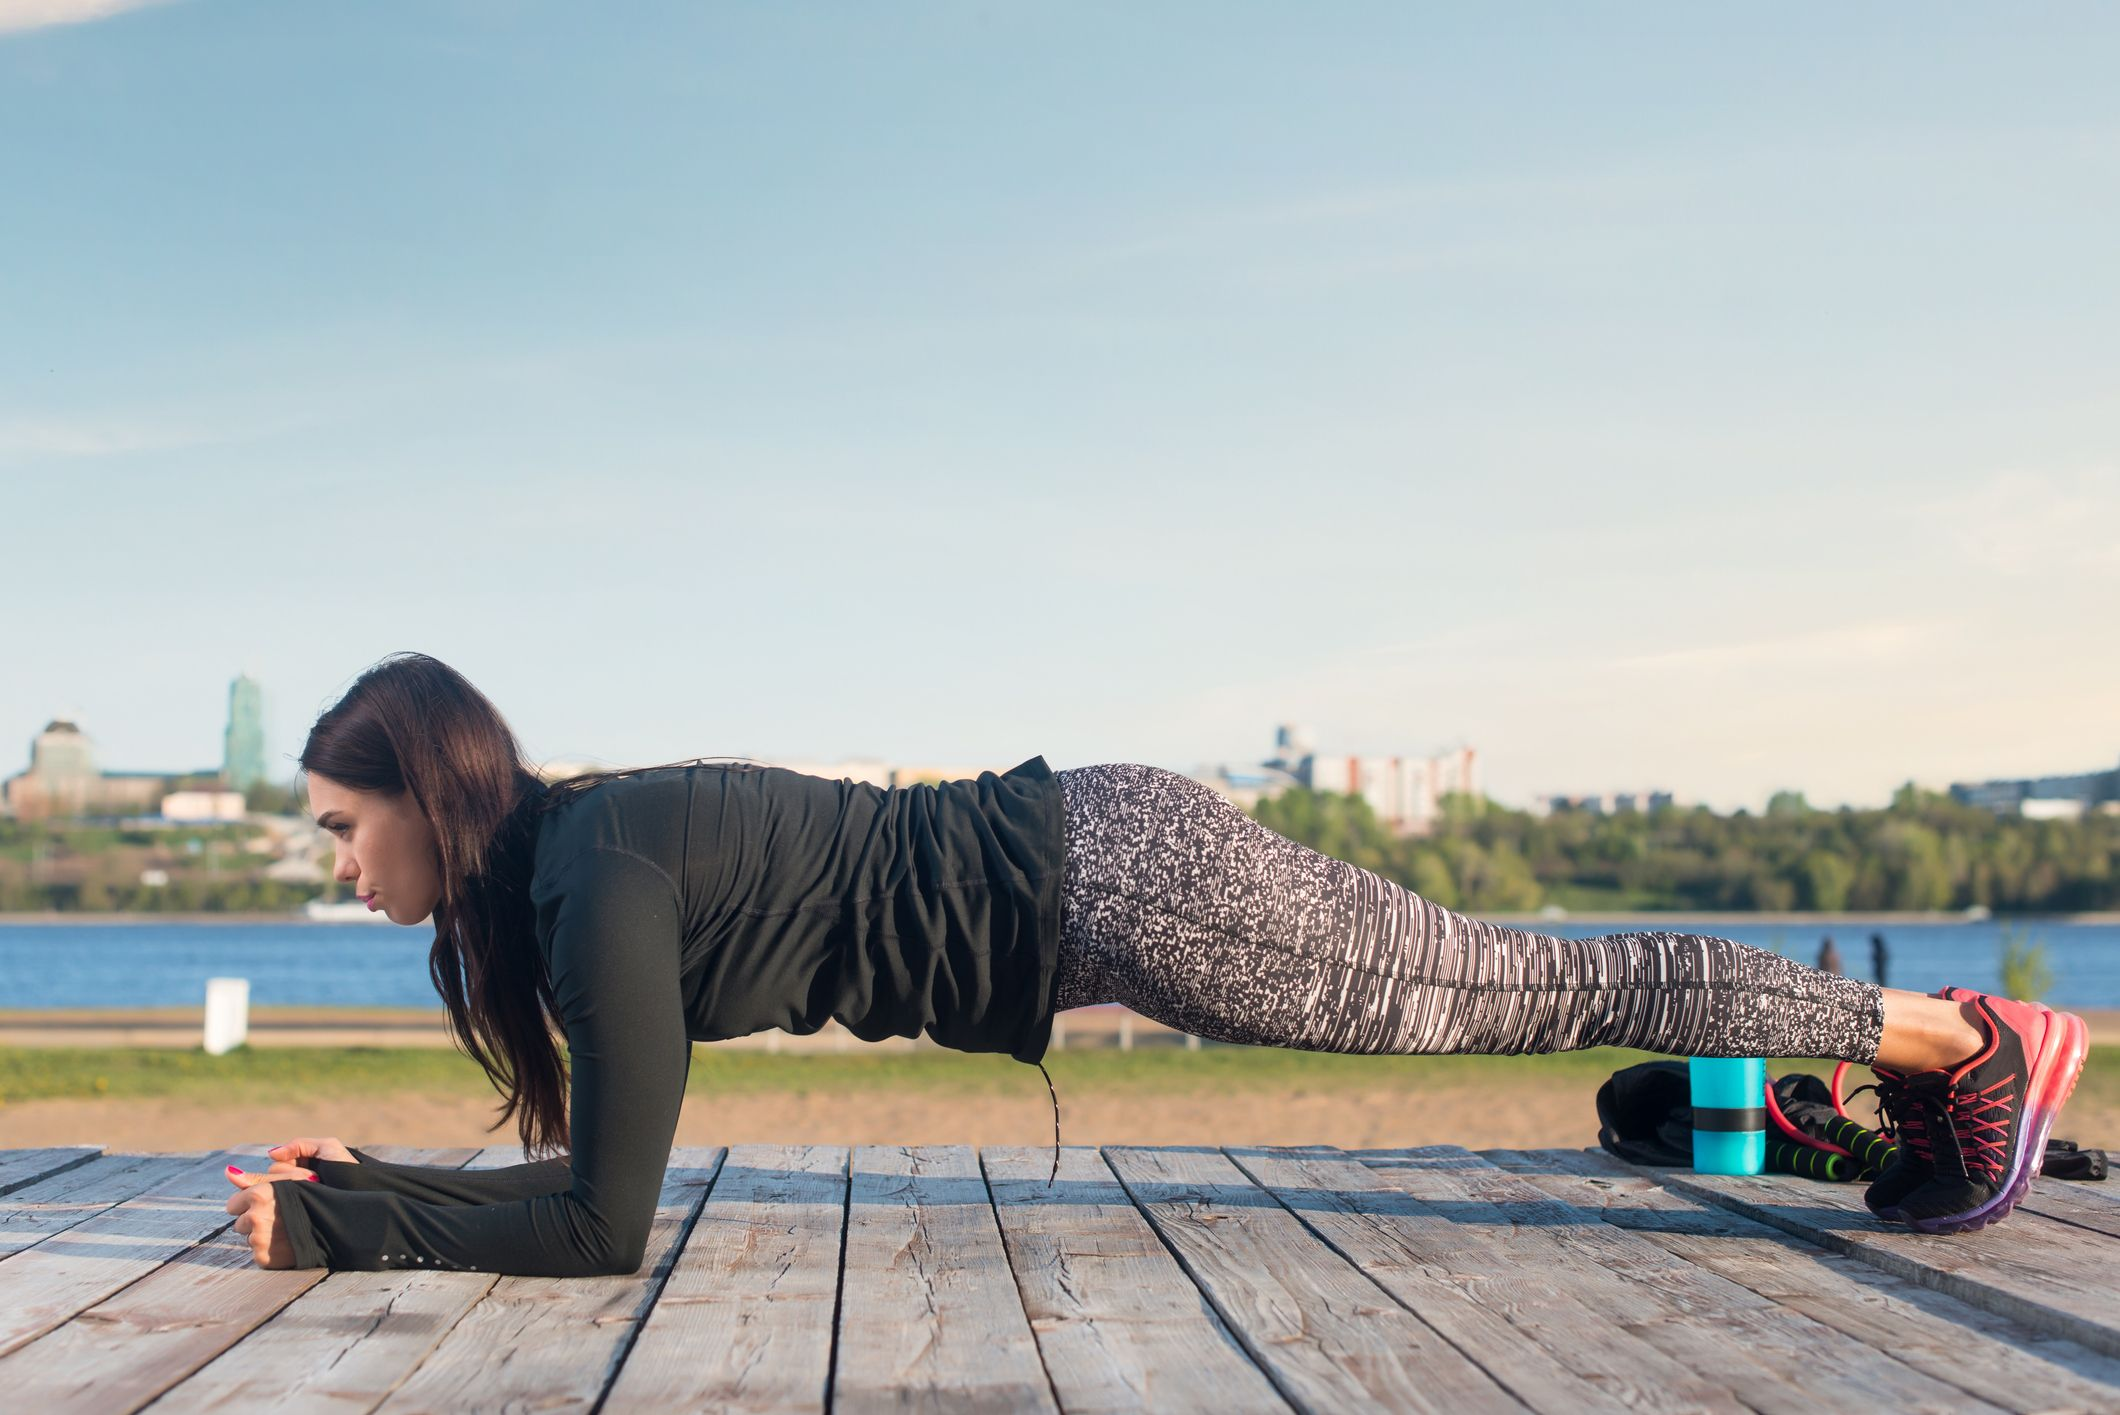 Sporty young woman doing elbow plank exercise working on abdominal